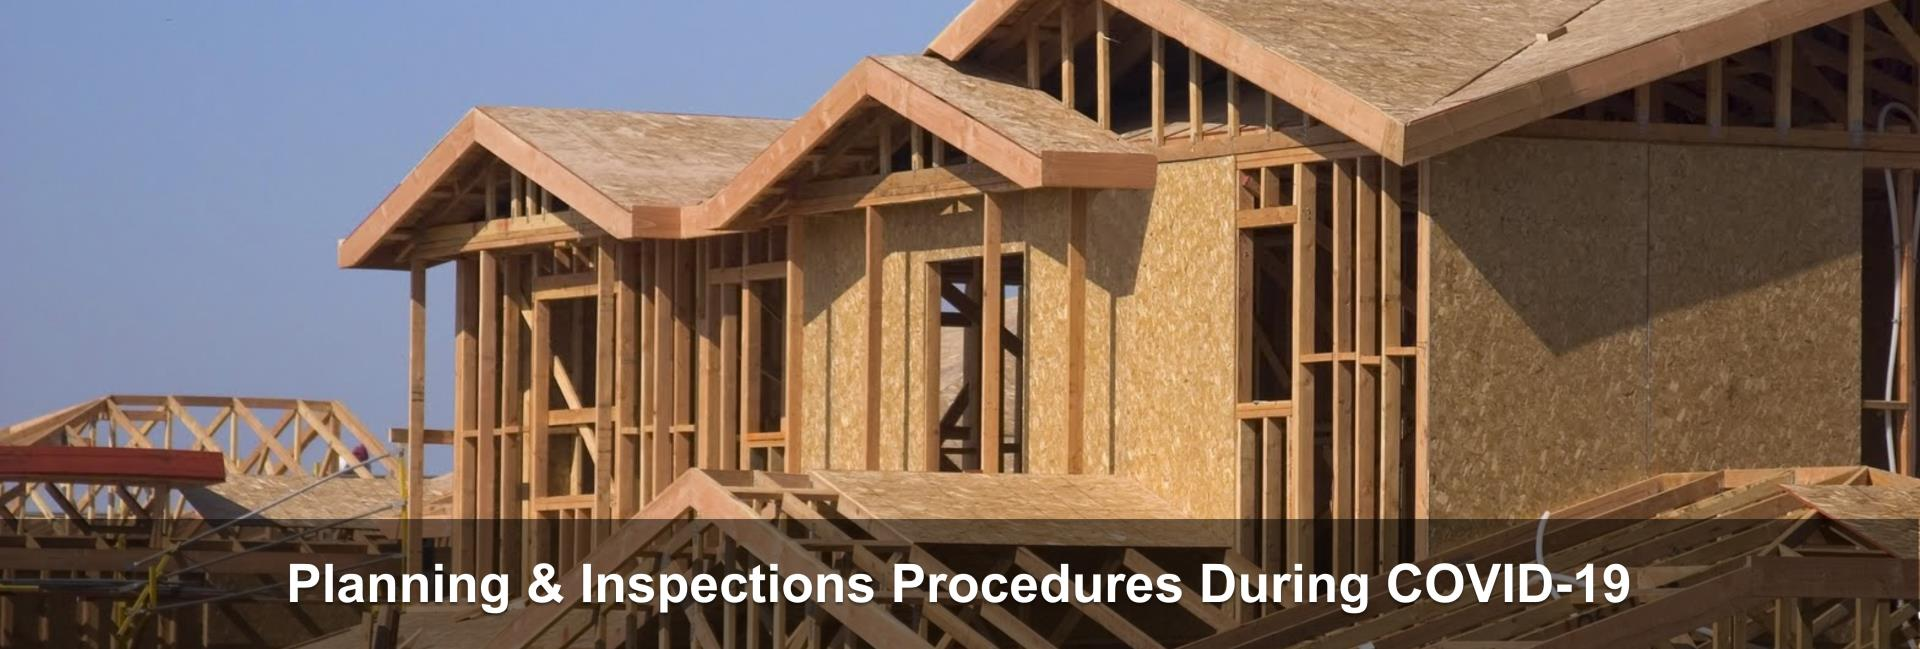 Planning & Inspections Procedures During COVID-19